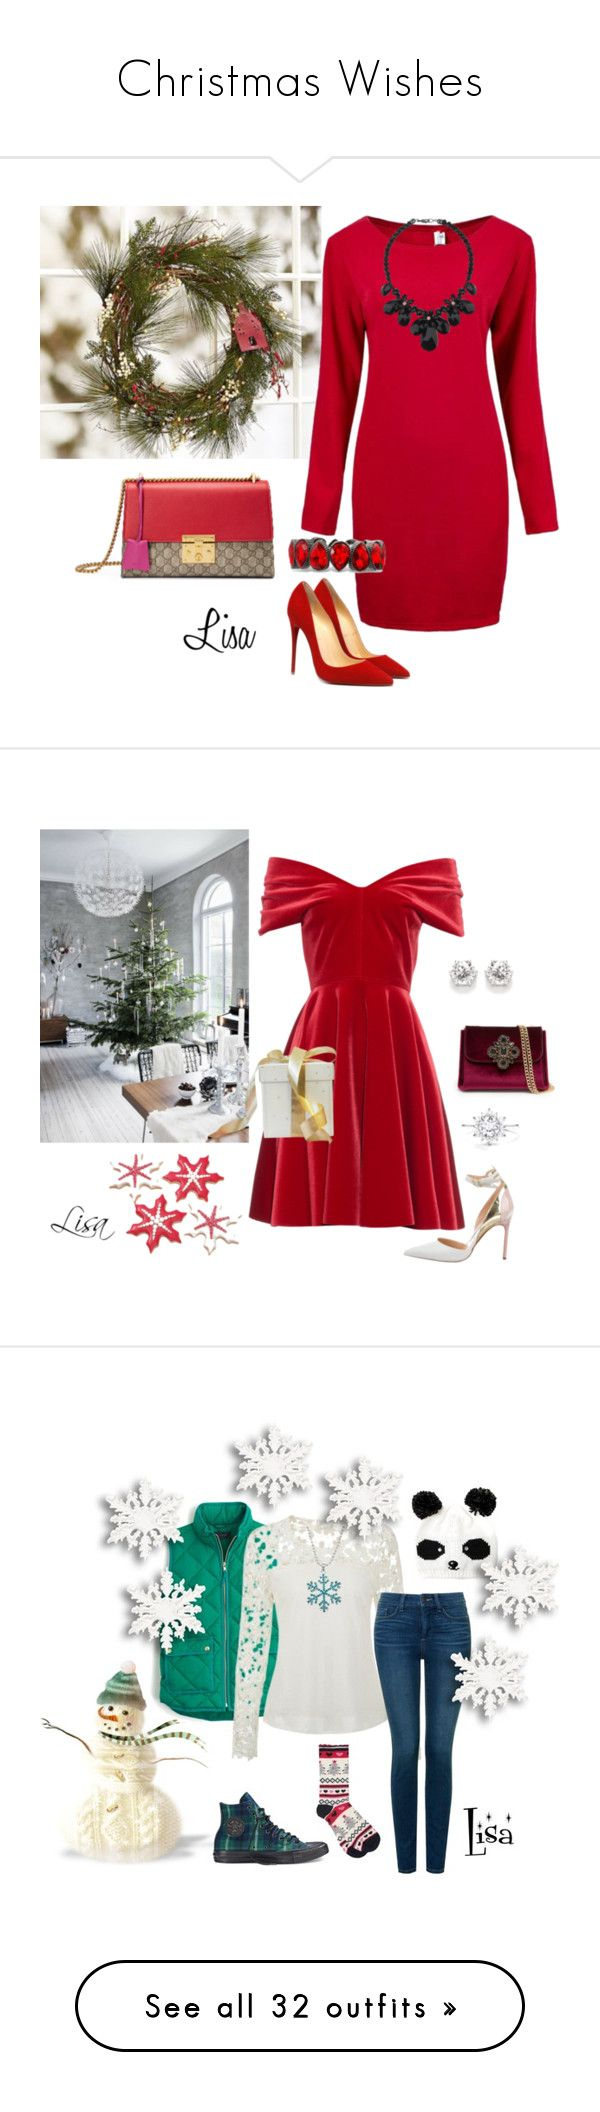 """Christmas Wishes"" by coolmommy44 ❤ liked on Polyvore featuring Pottery Barn, Gucci, Wallis, Emilio De La Morena, Bebe, Manolo Blahnik, J.Crew, NYDJ, Converse and M&Co"